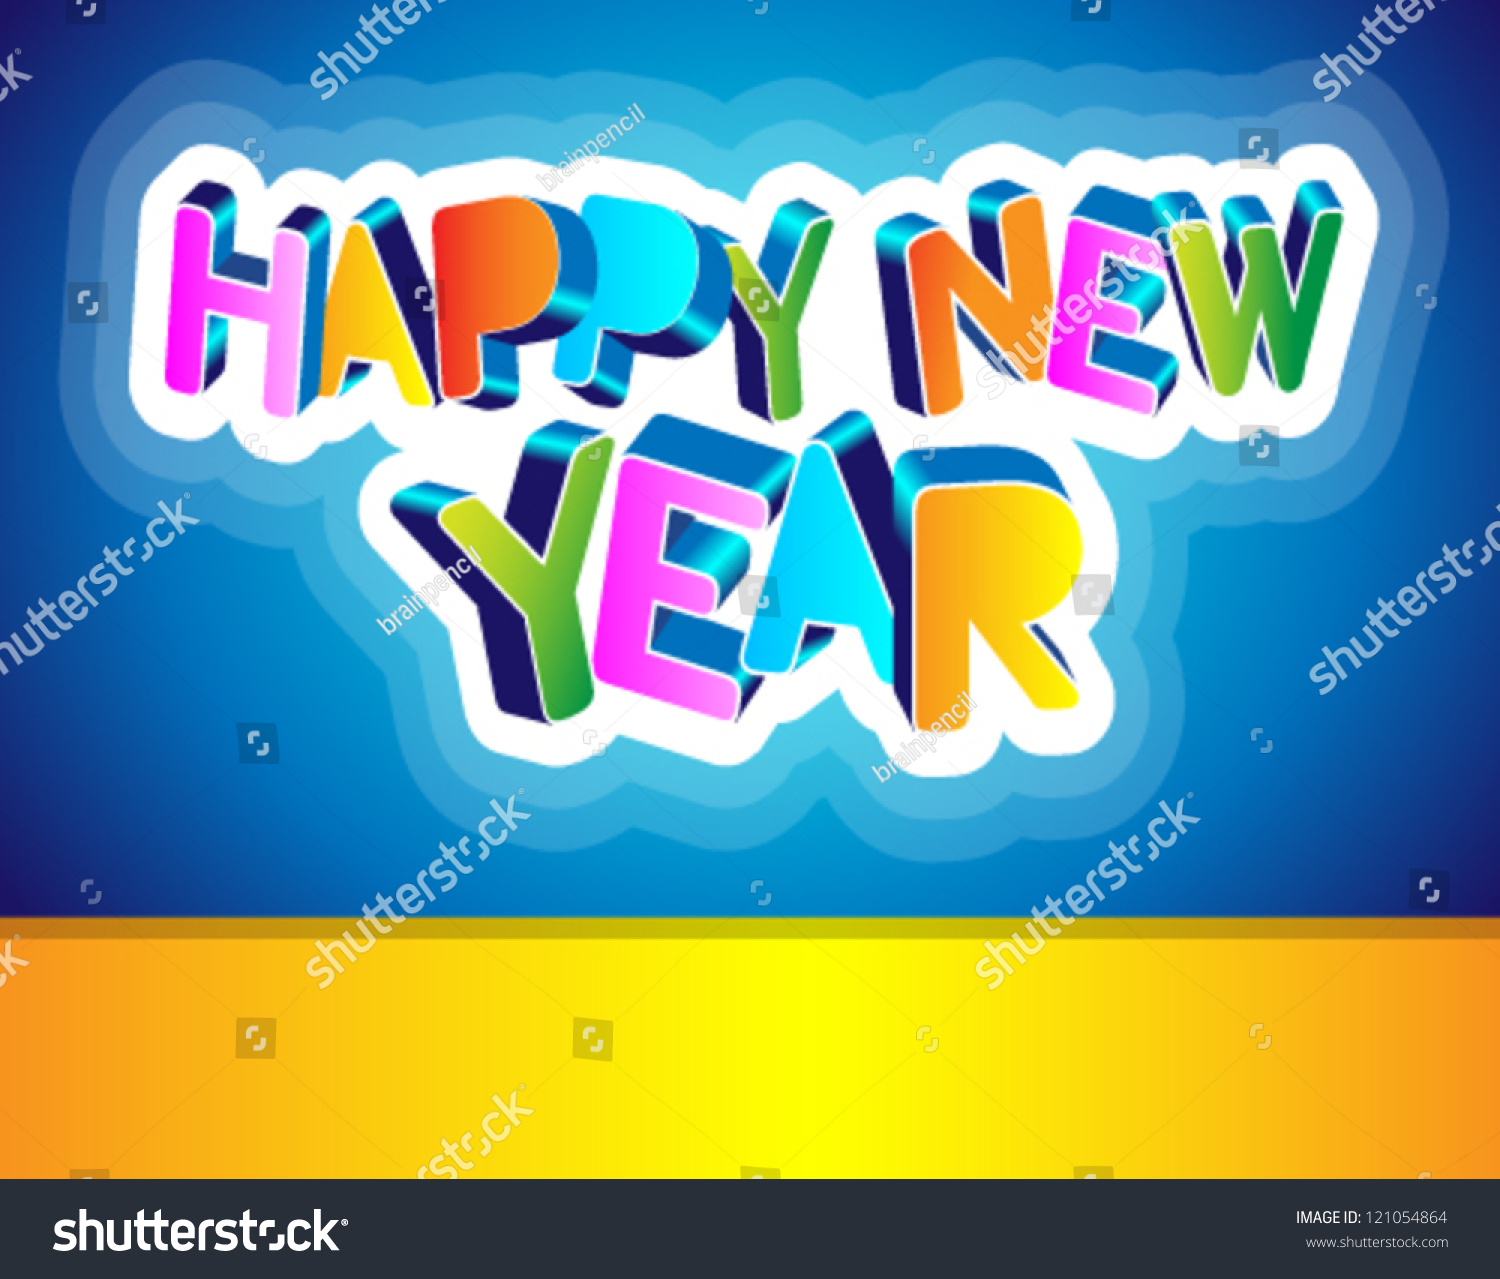 2017 merry christmas happy new year stock vector 121054864 2017 merry christmas happy new year stock vector 121054864 shutterstock m4hsunfo